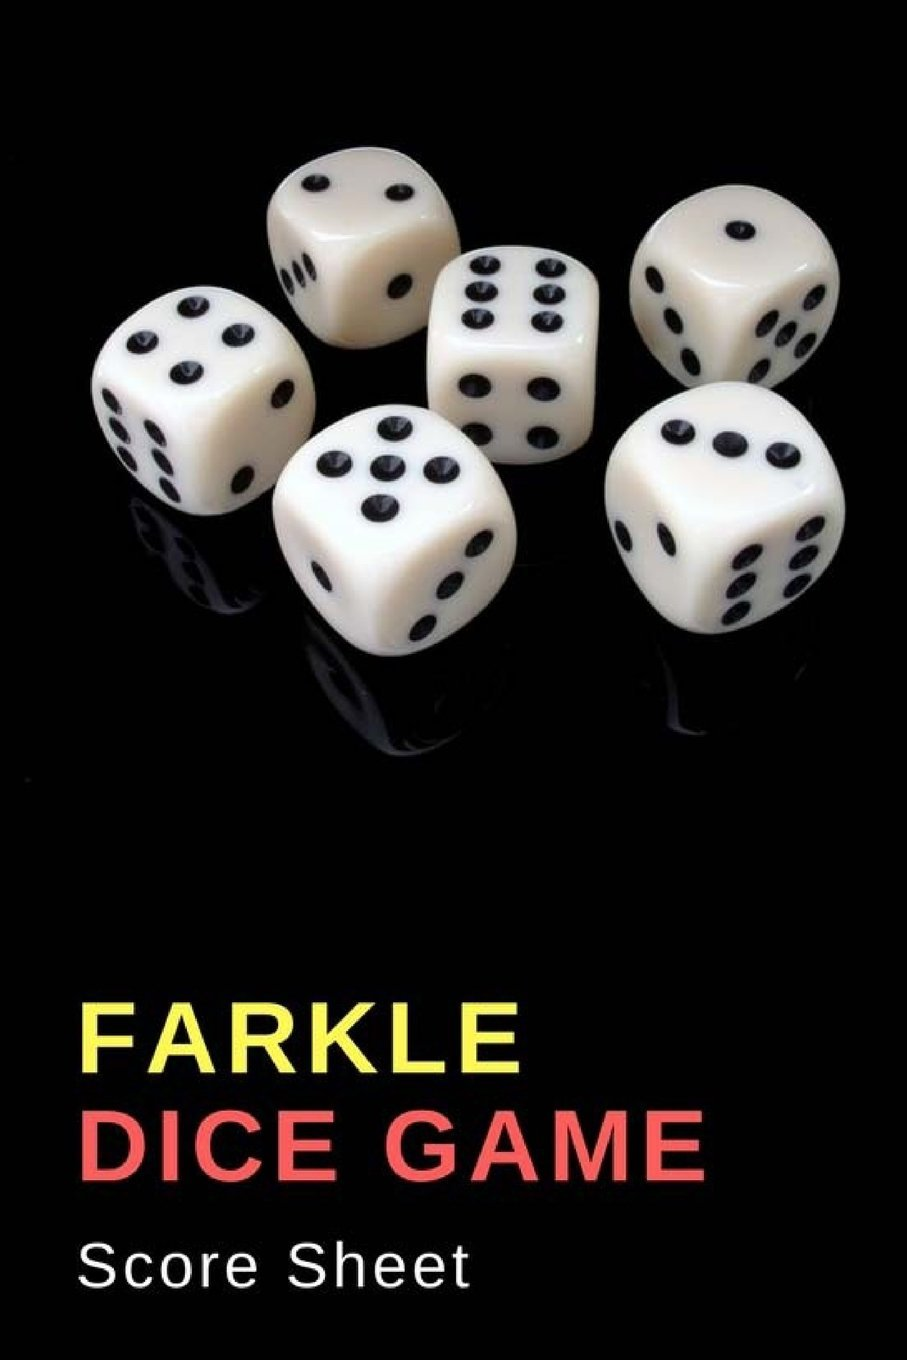 Download Farkle Dice Game Score Sheets: Pocket Scoresheet for Multi-Player of Farkle Board Games, 100 pages for 100 games ebook